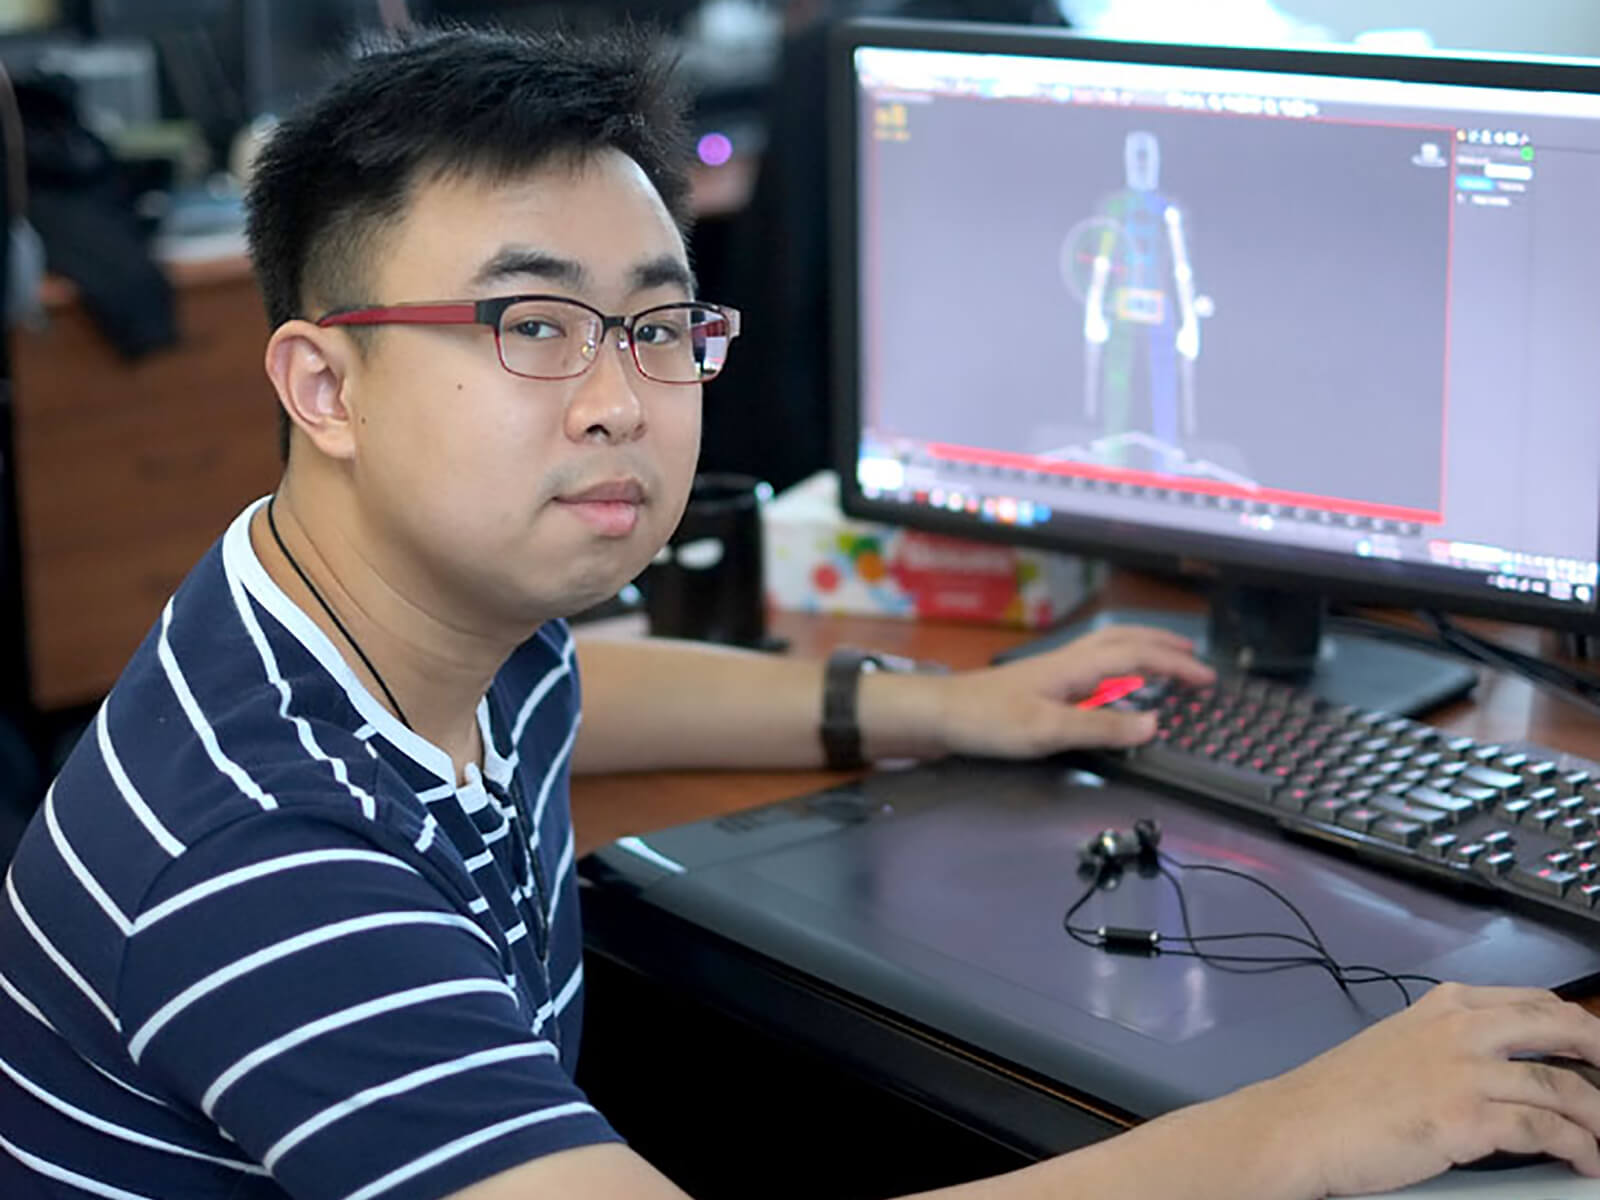 DigiPen graduate Lauri Gui poses for a photo at a desk with a monitor and tablet